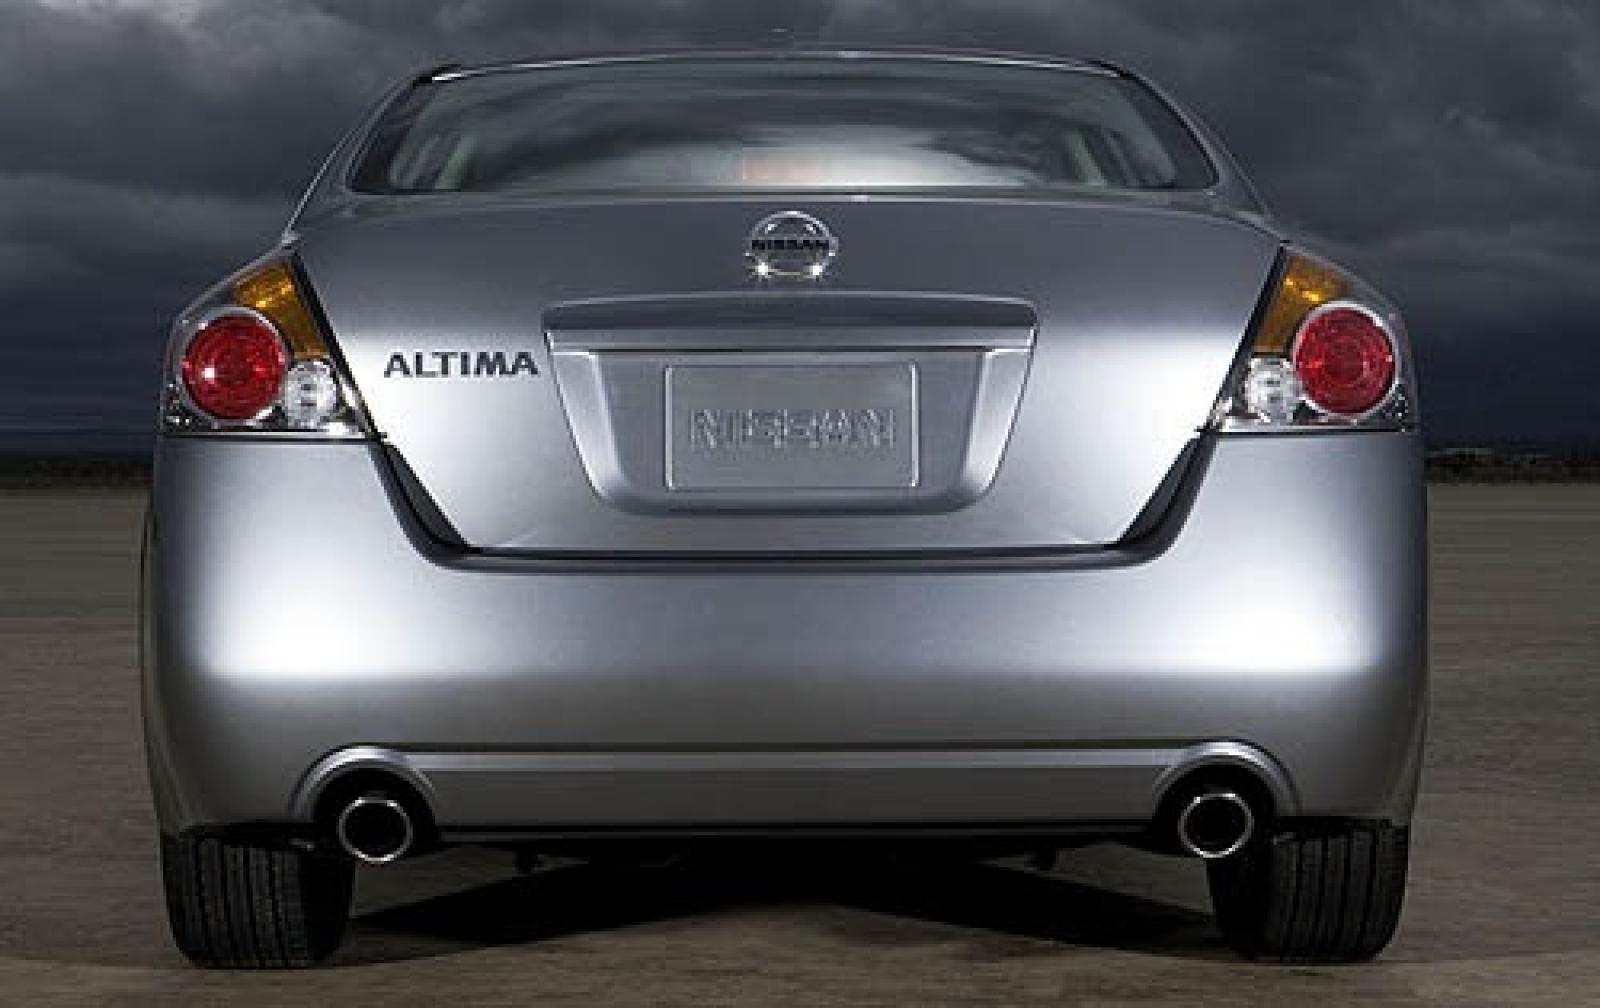 2007 2010 nissan altima sedan used car review autos post. Black Bedroom Furniture Sets. Home Design Ideas